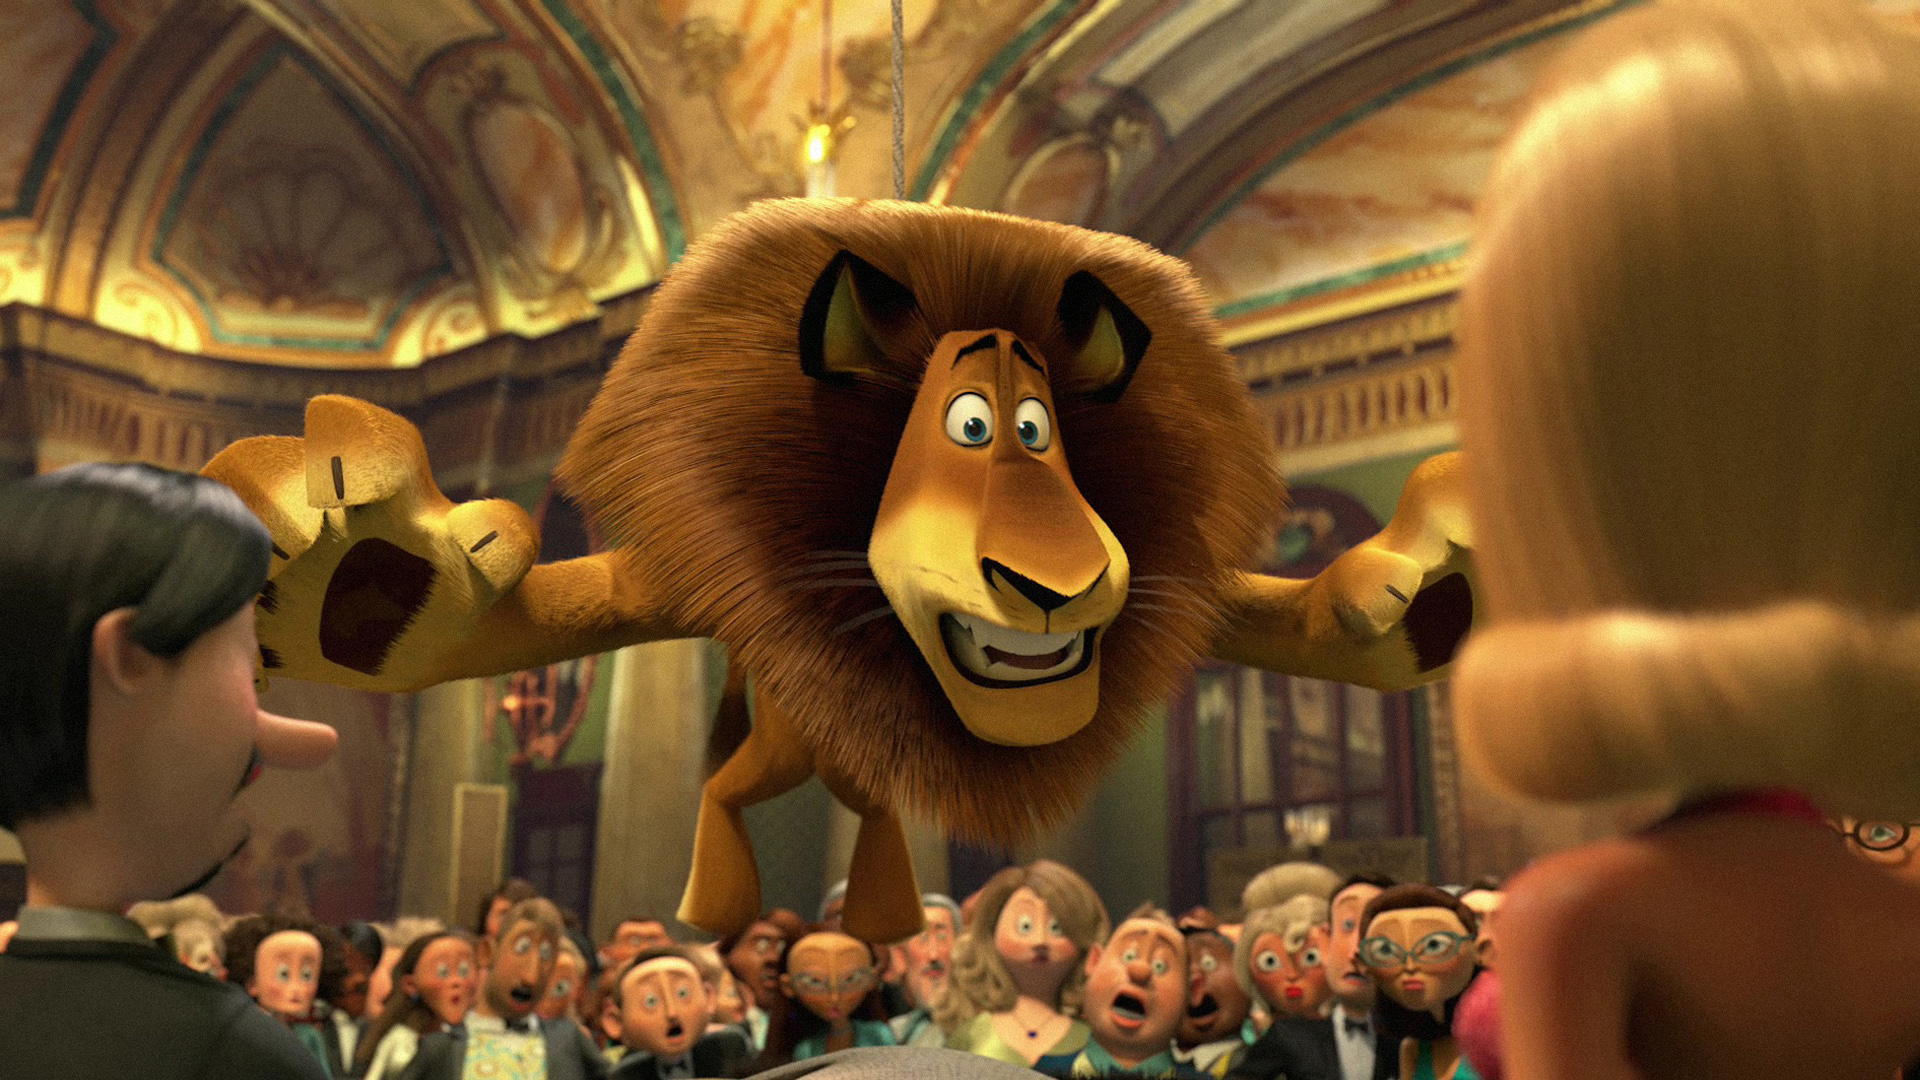 Animated Lion Wallpaper Hd Madagascar 3 Europe S Most Wanted Hd Wallpapers All Hd